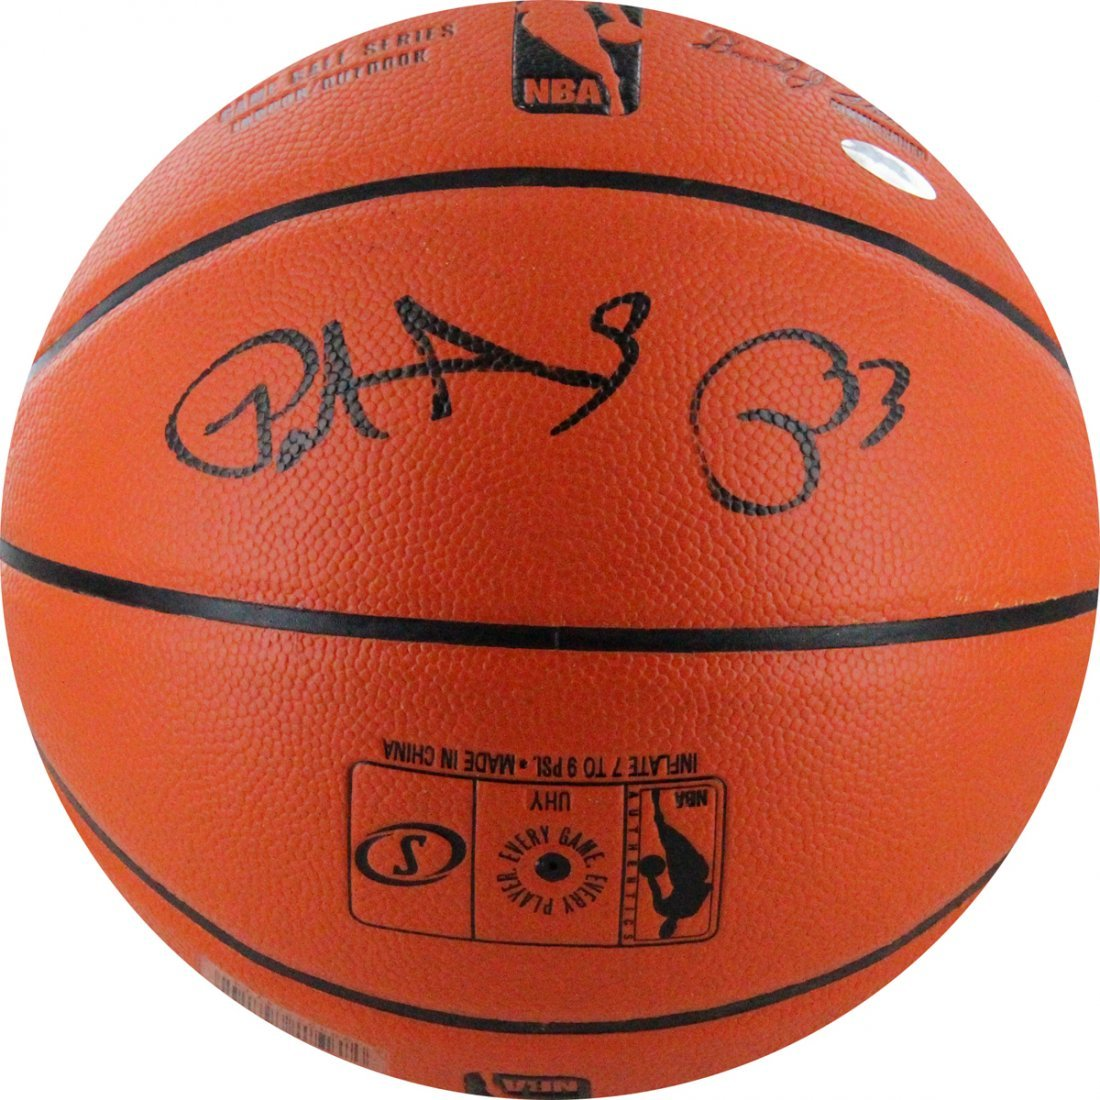 Patrick Ewing Signed Game Series I/O Basketball